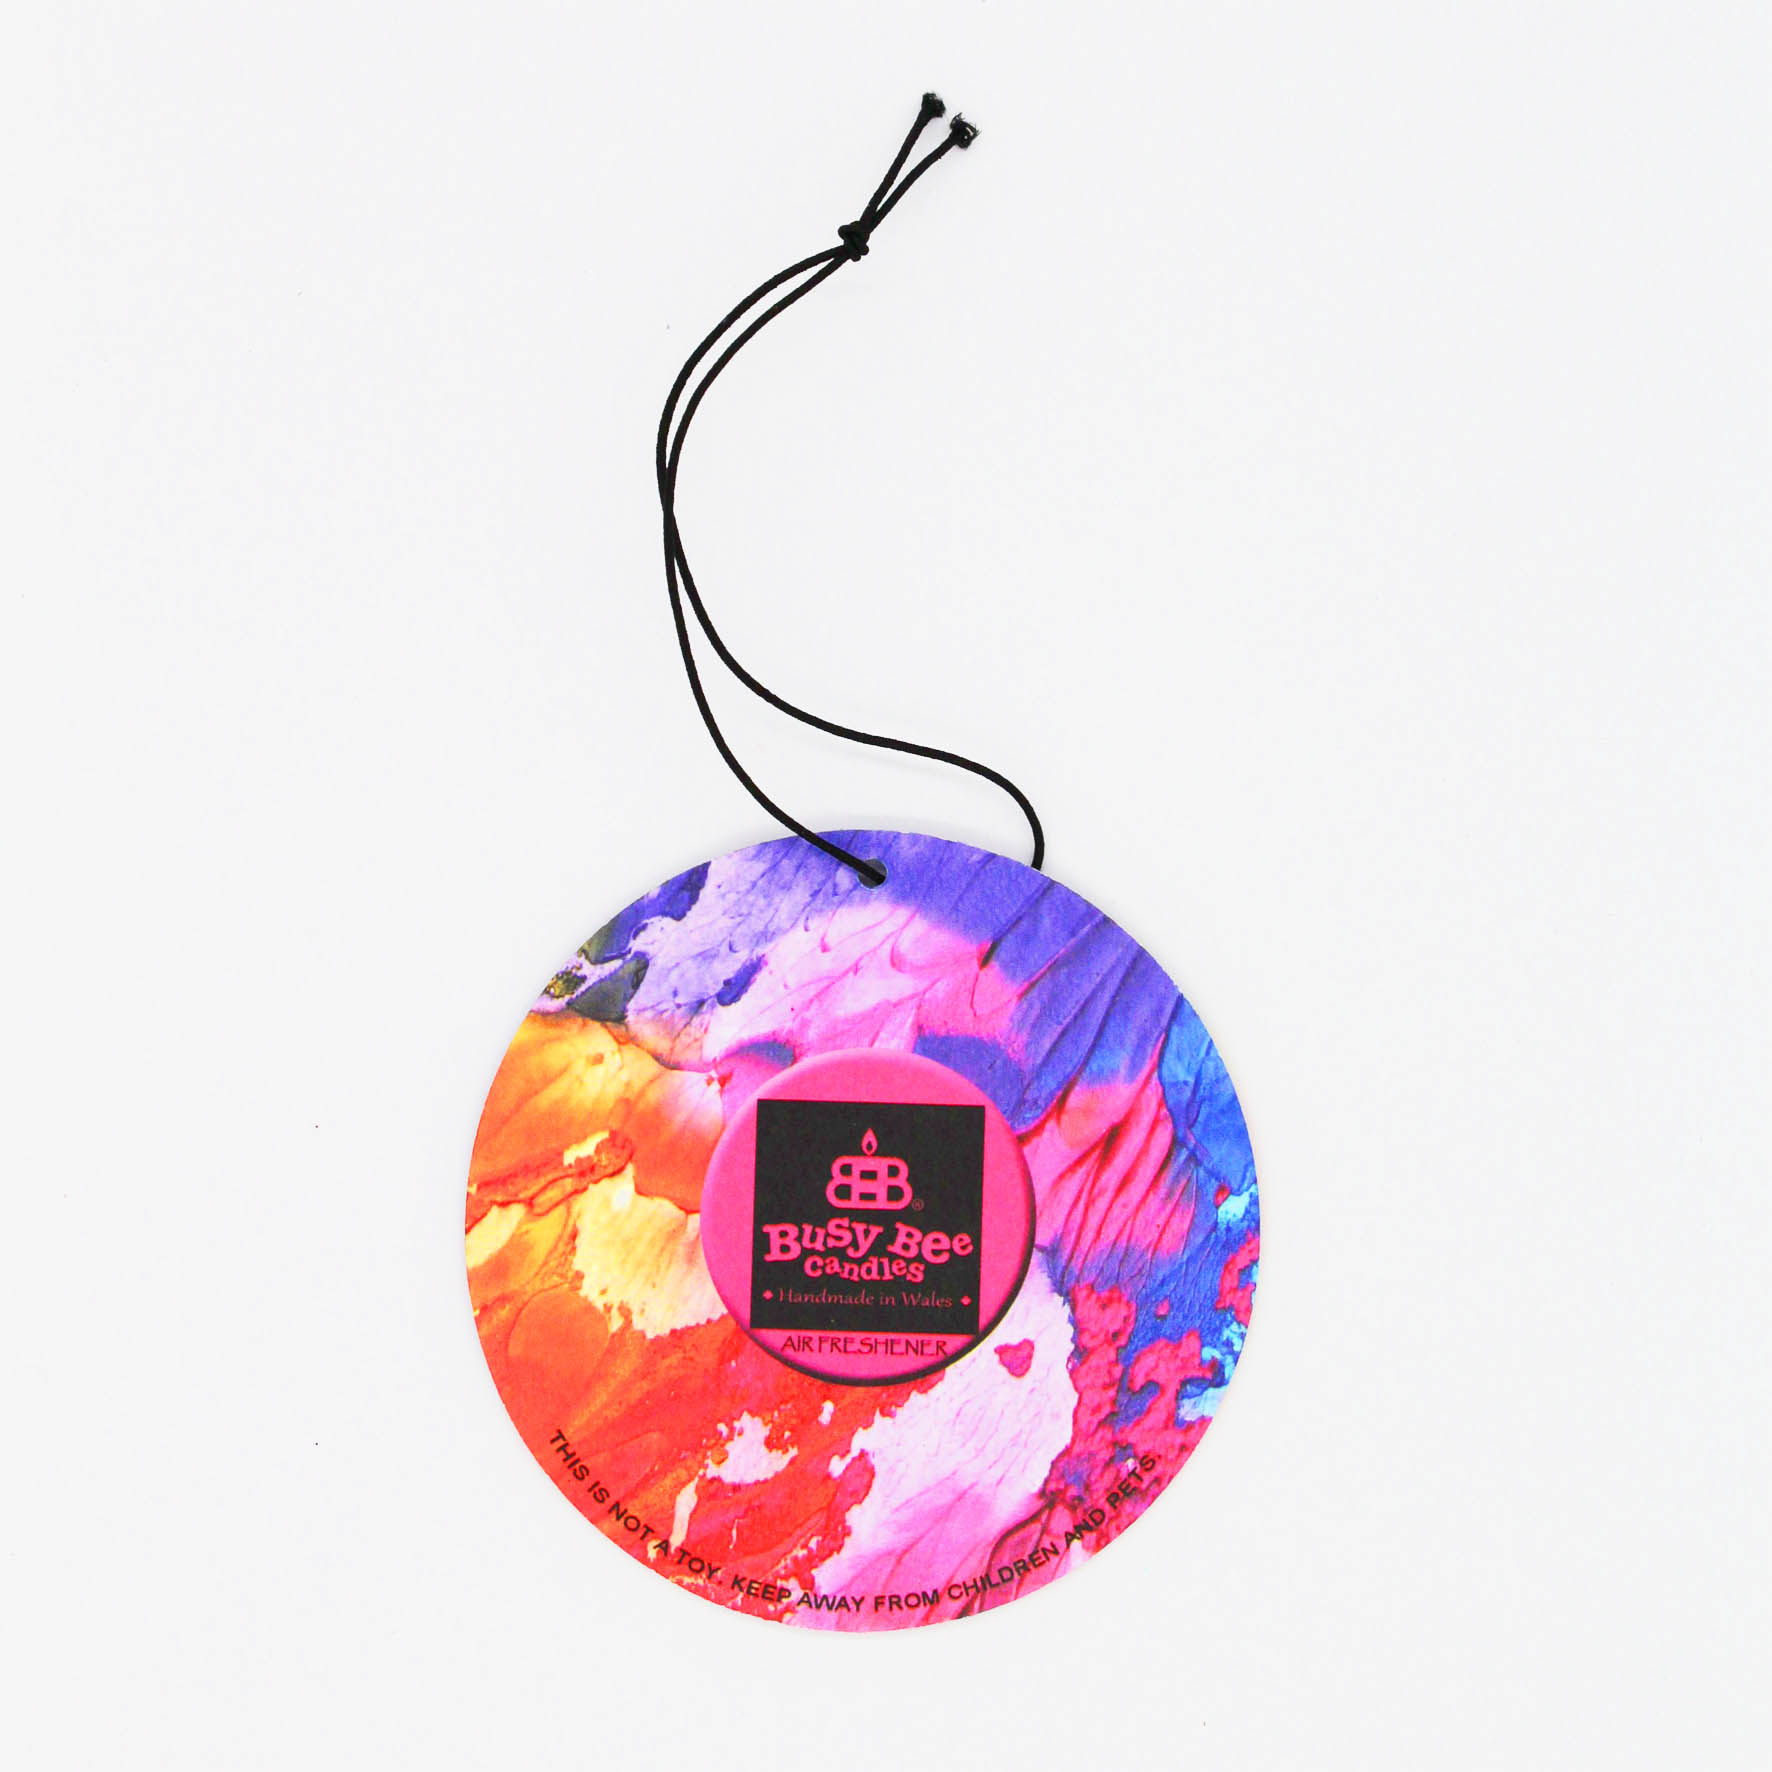 Fruit Cocktail Hanging Air Freshener